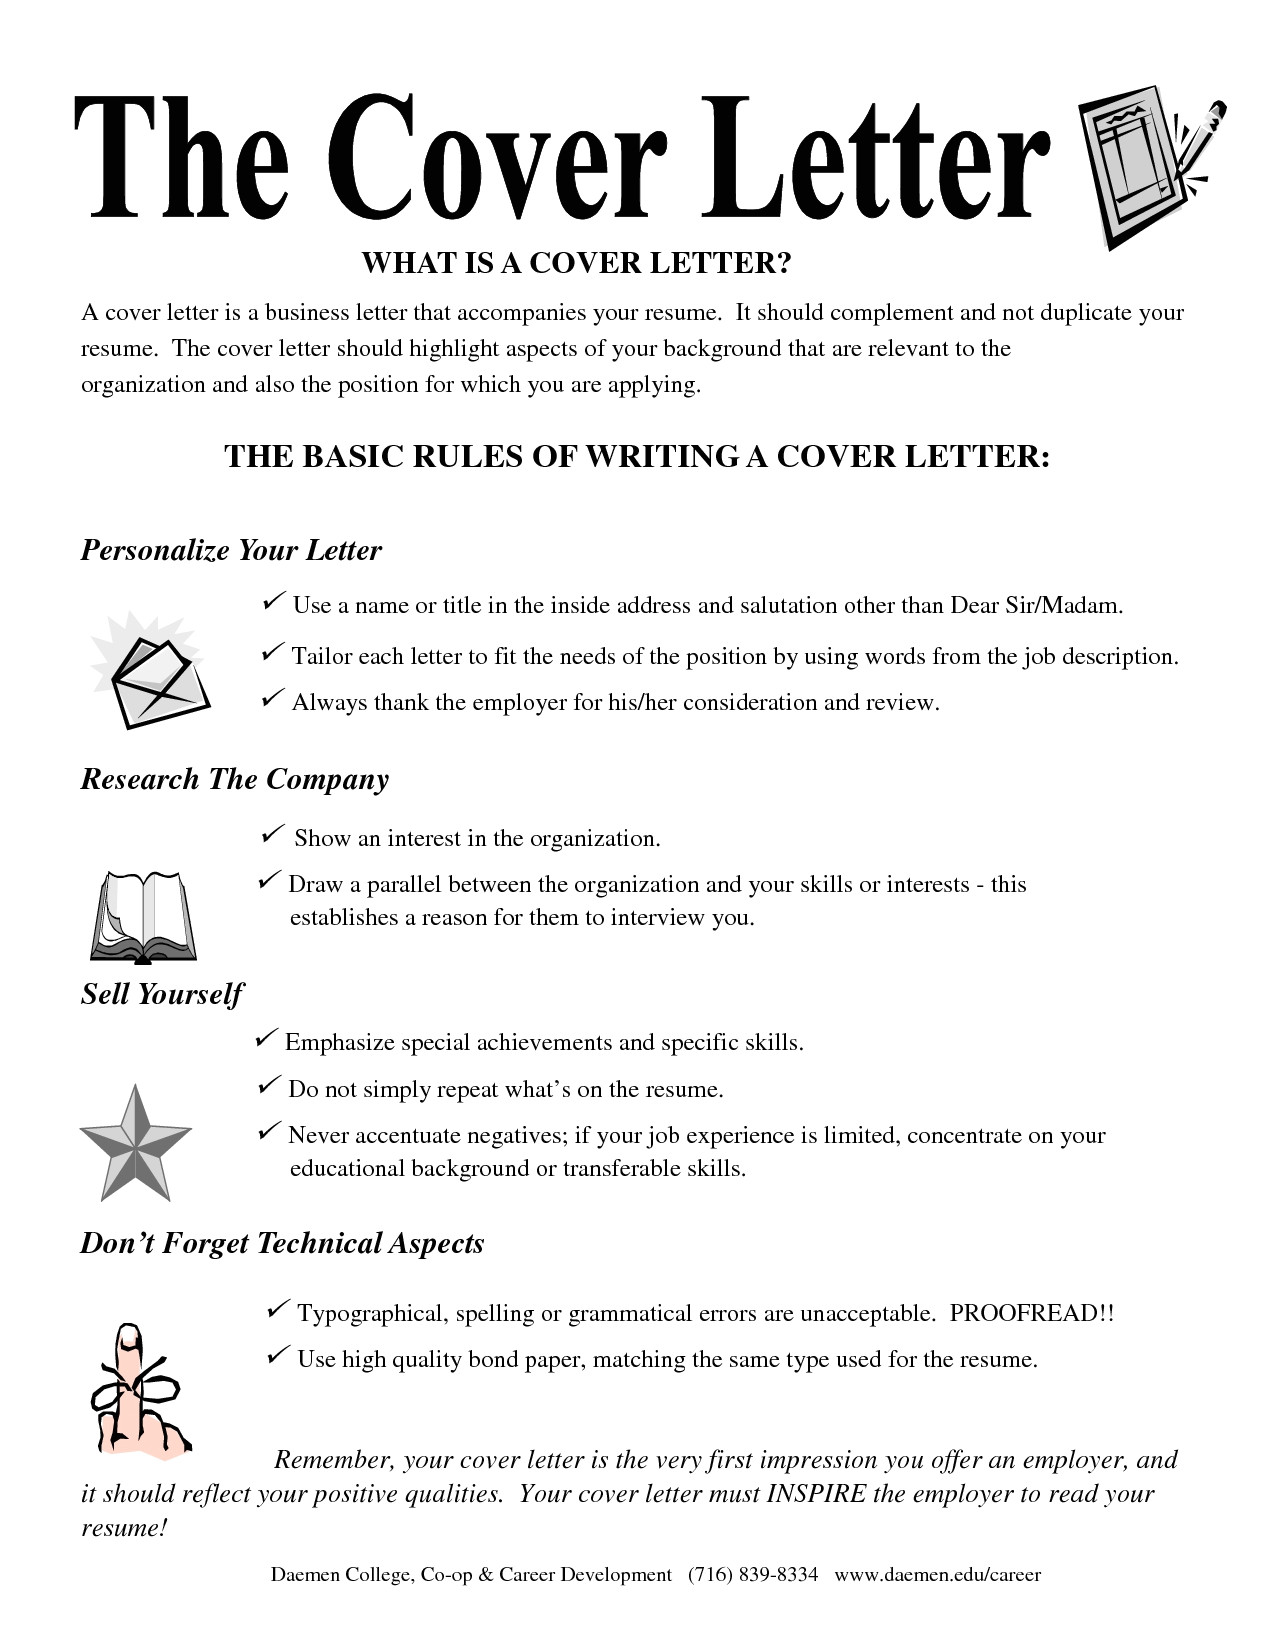 whats in a cover letter 2809